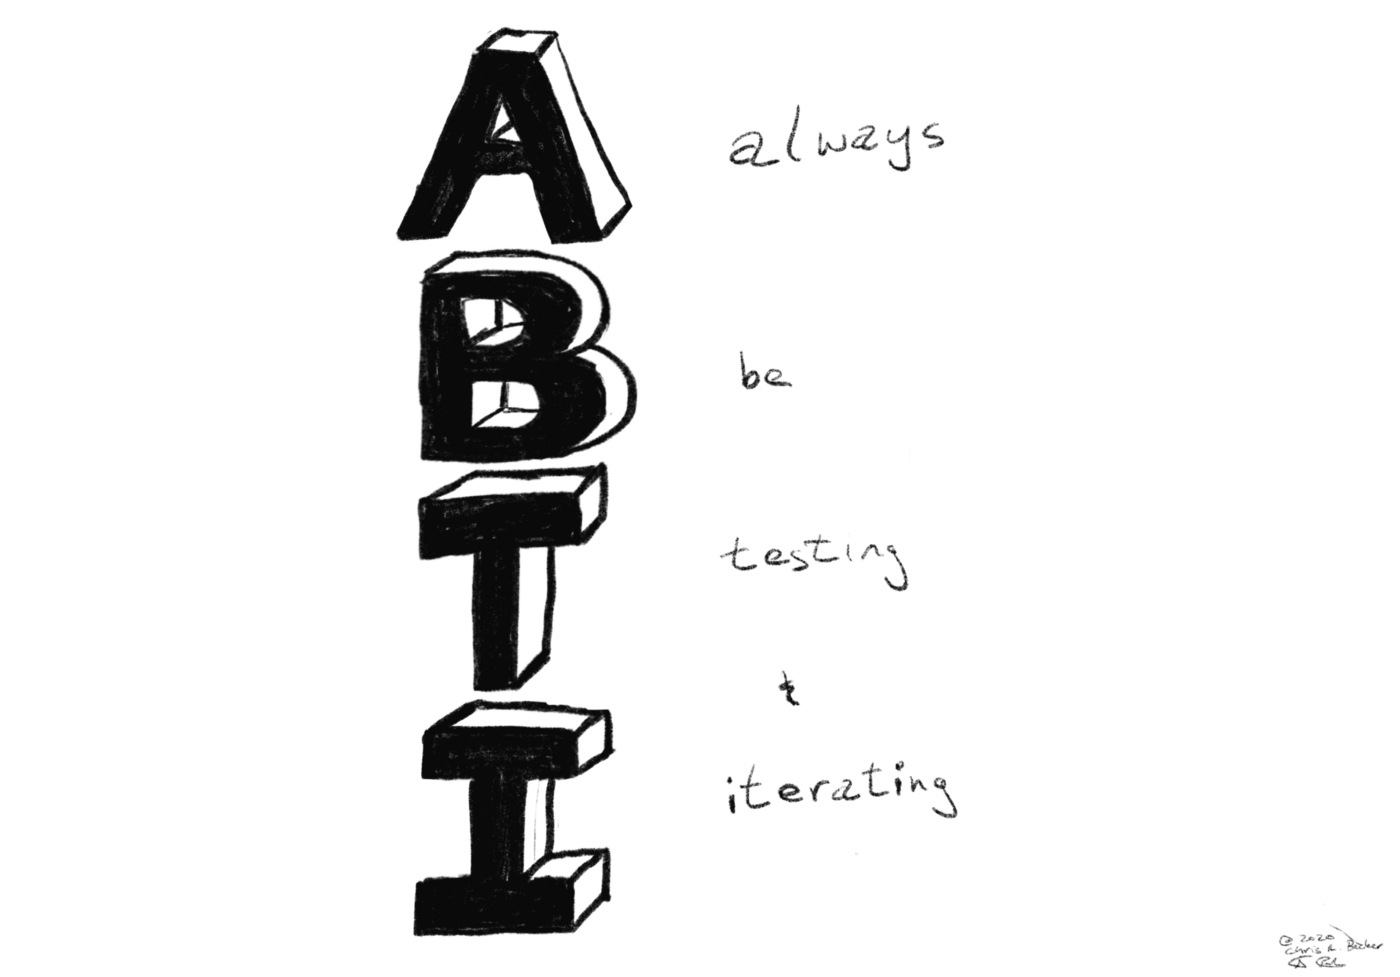 An illustration the letters of ABTI — Always Be Testing and Iterating